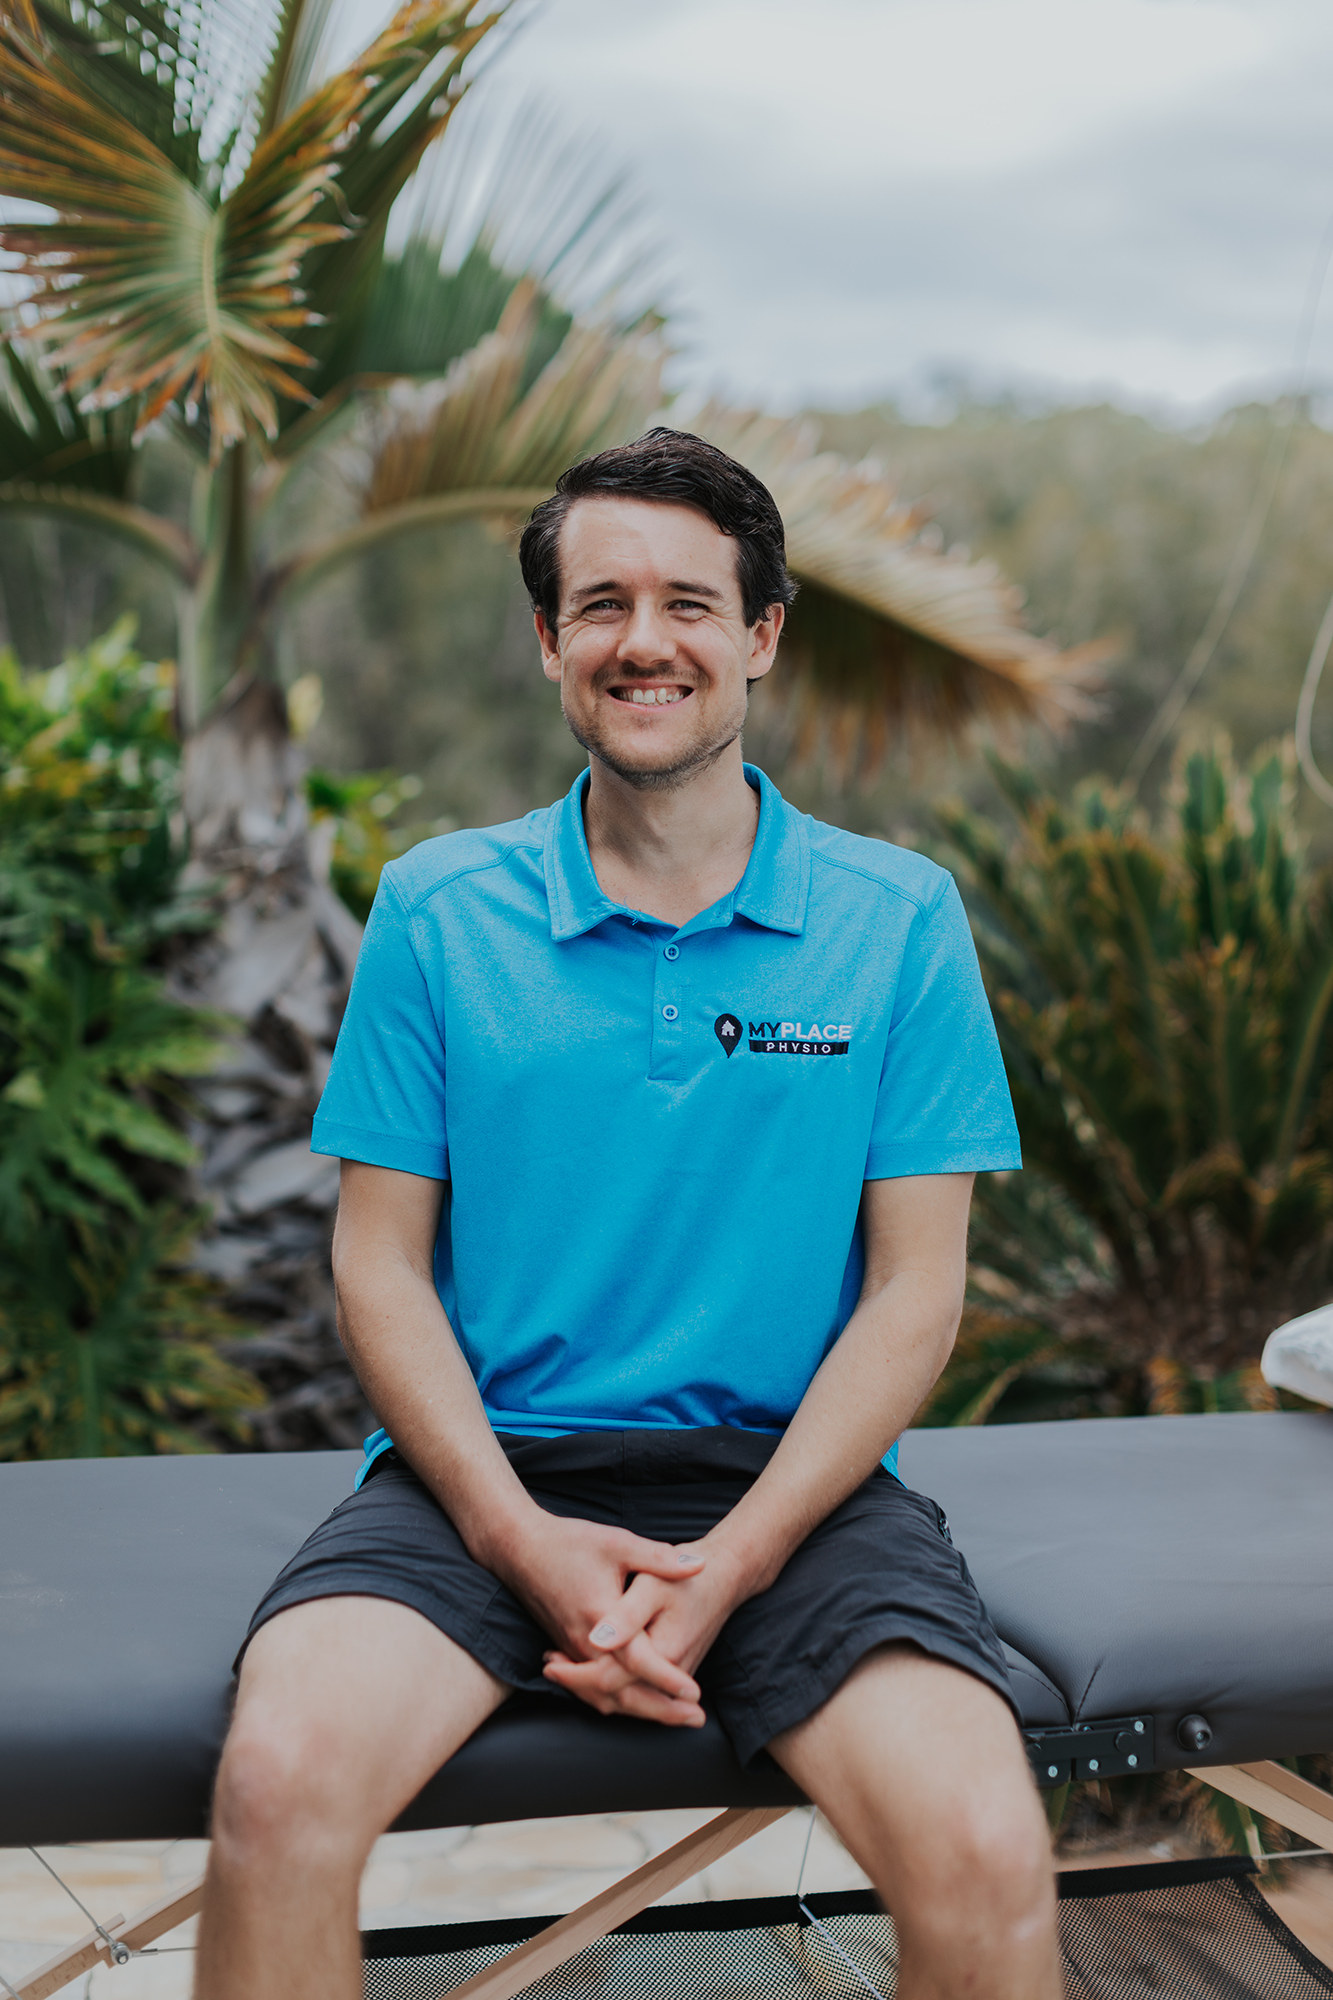 Jacob Taylor Profile Picture - Director of MyPlace Physio